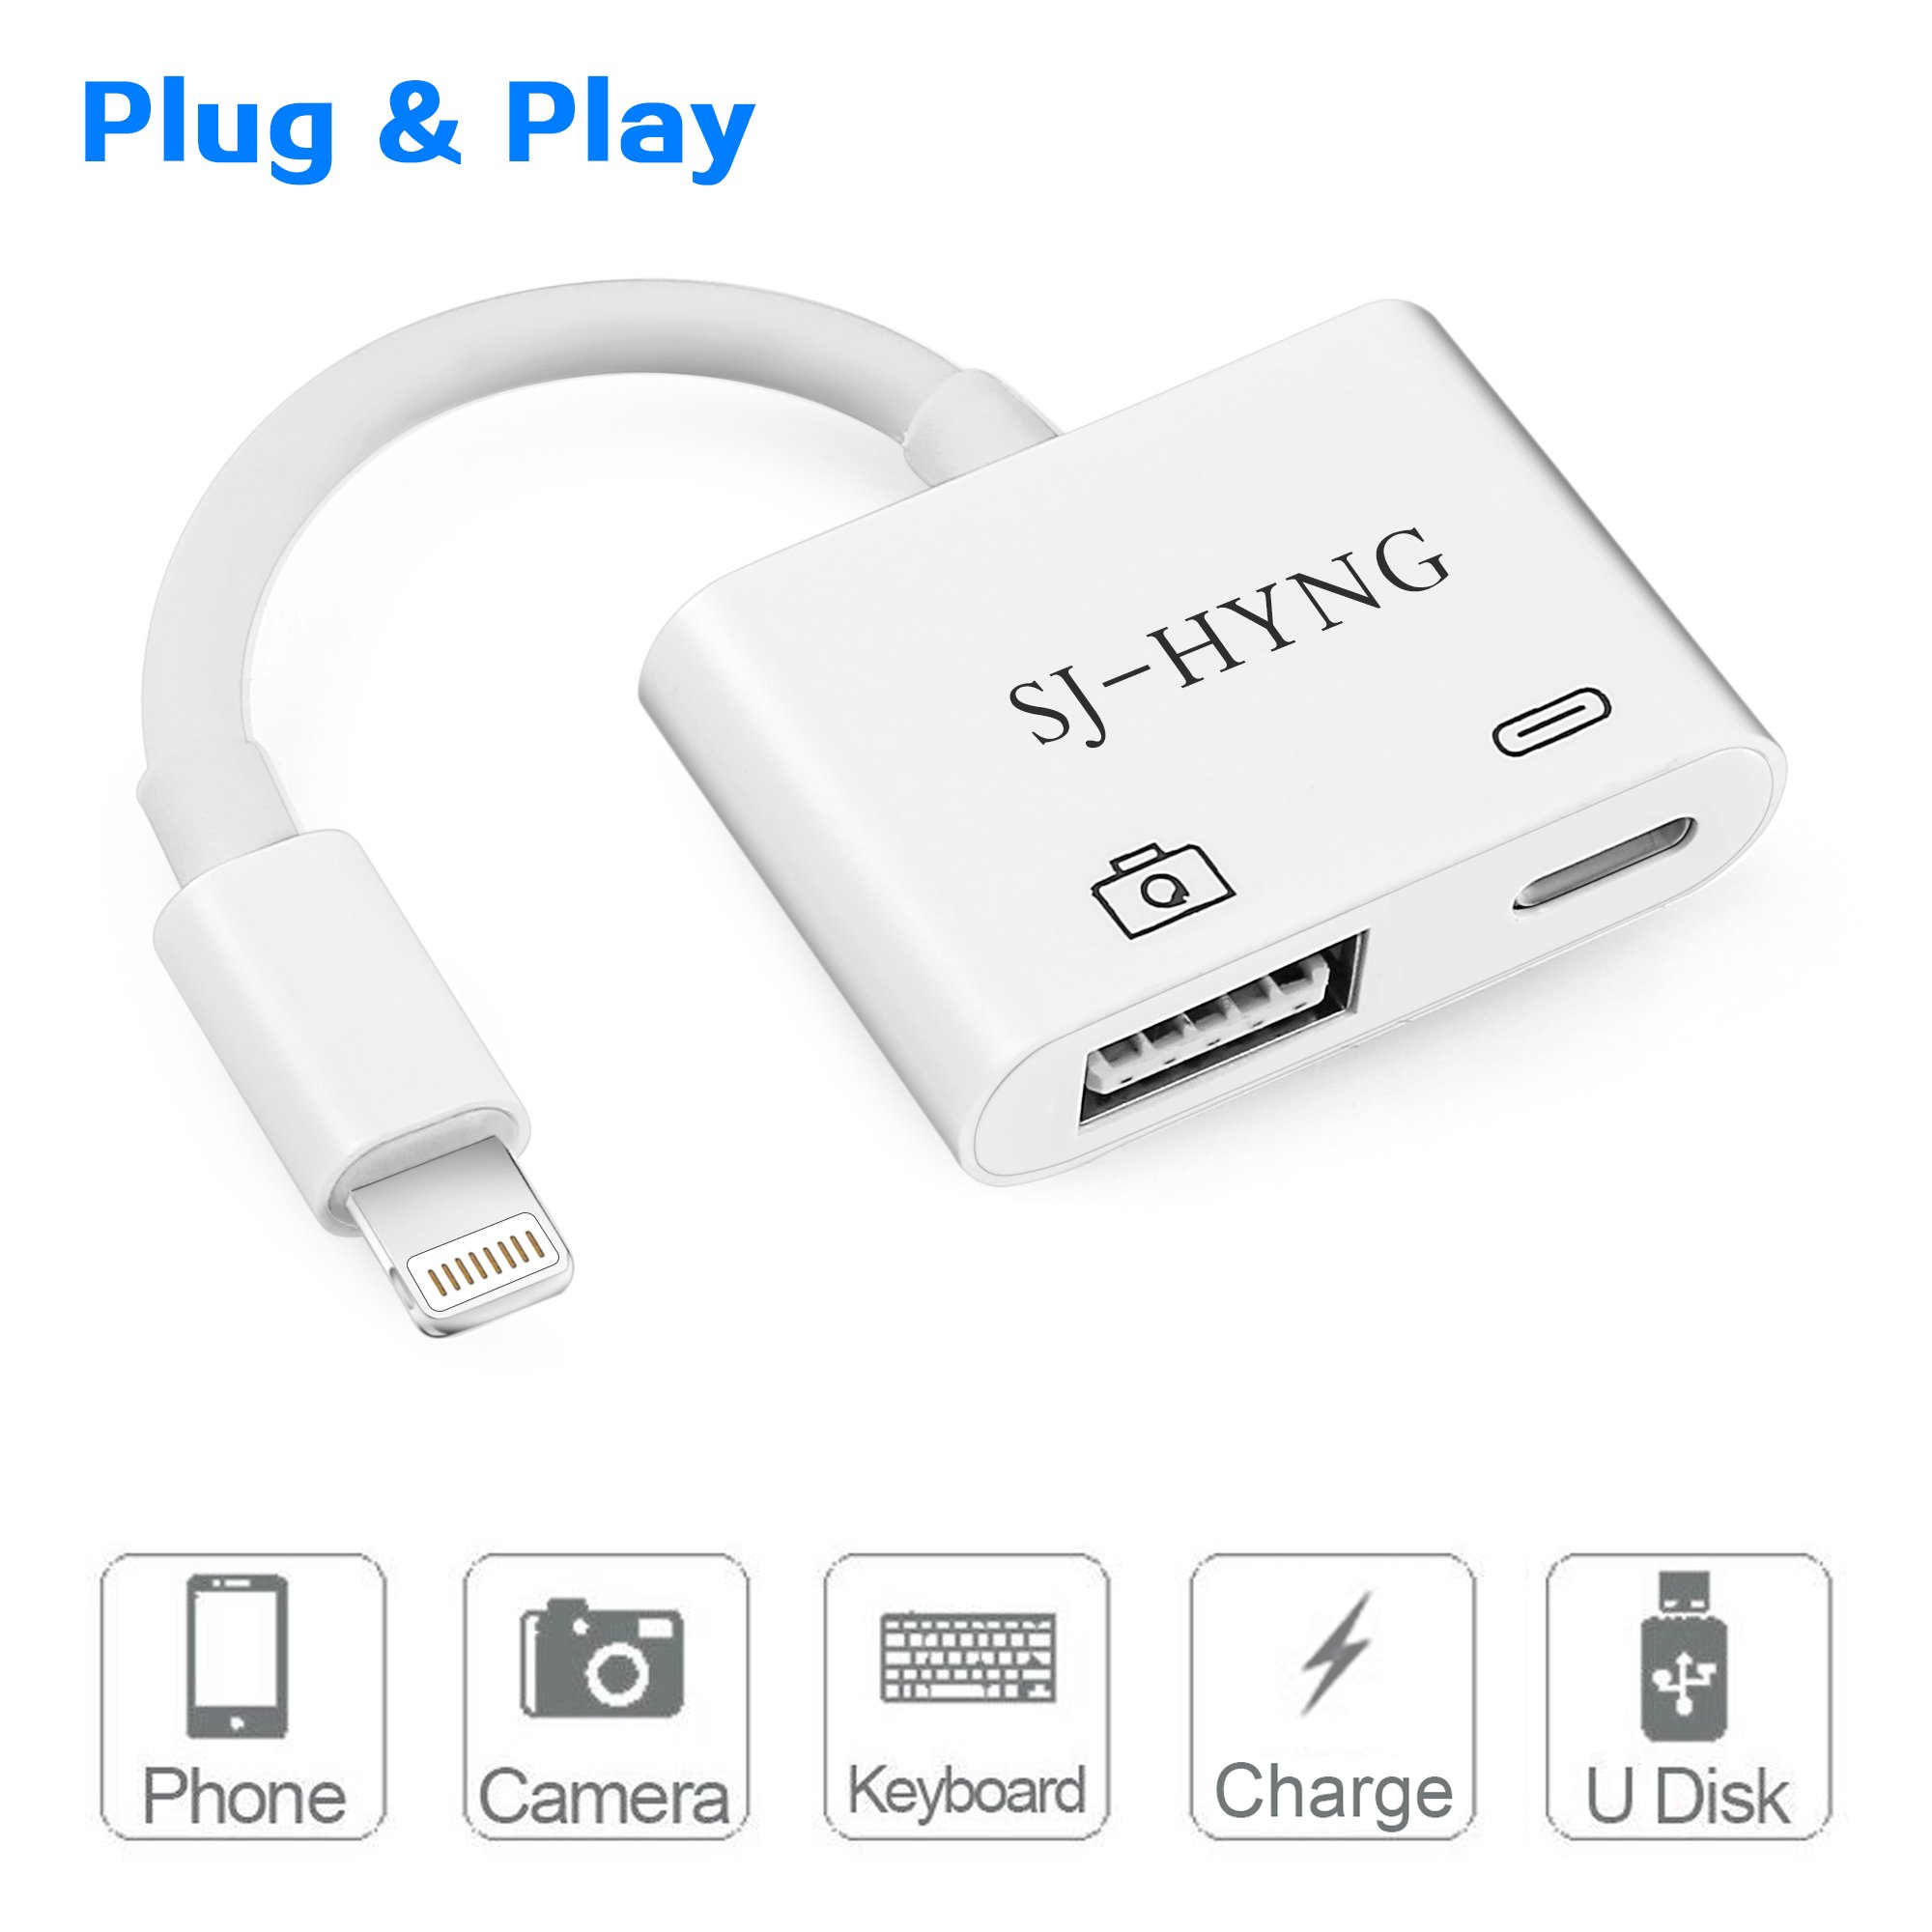 Lightning to USB Camera Adapter,SJ-HYNG Lightning to USB 3.0 Female OTG Adapter Cable With USB Power Interface Data Sync Charge Cable For iPhone and iPad (Support the latest iOS 11.3),No App Required